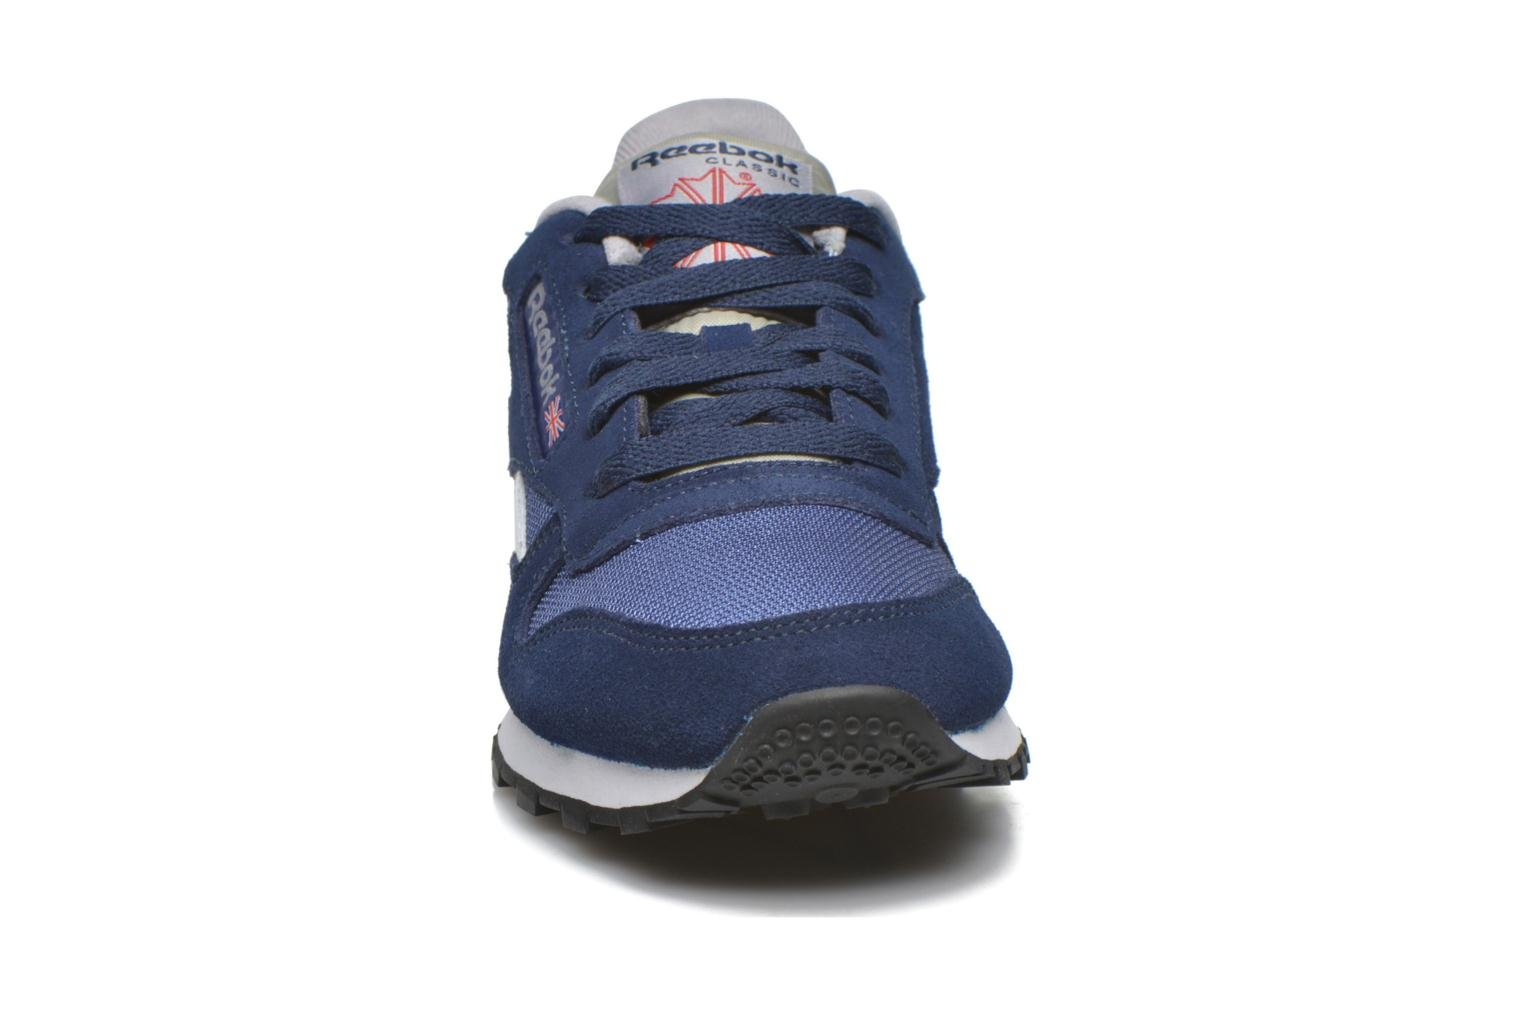 Classic Sport Clean cllg navy/mdnght blue/white/tingry/pwred